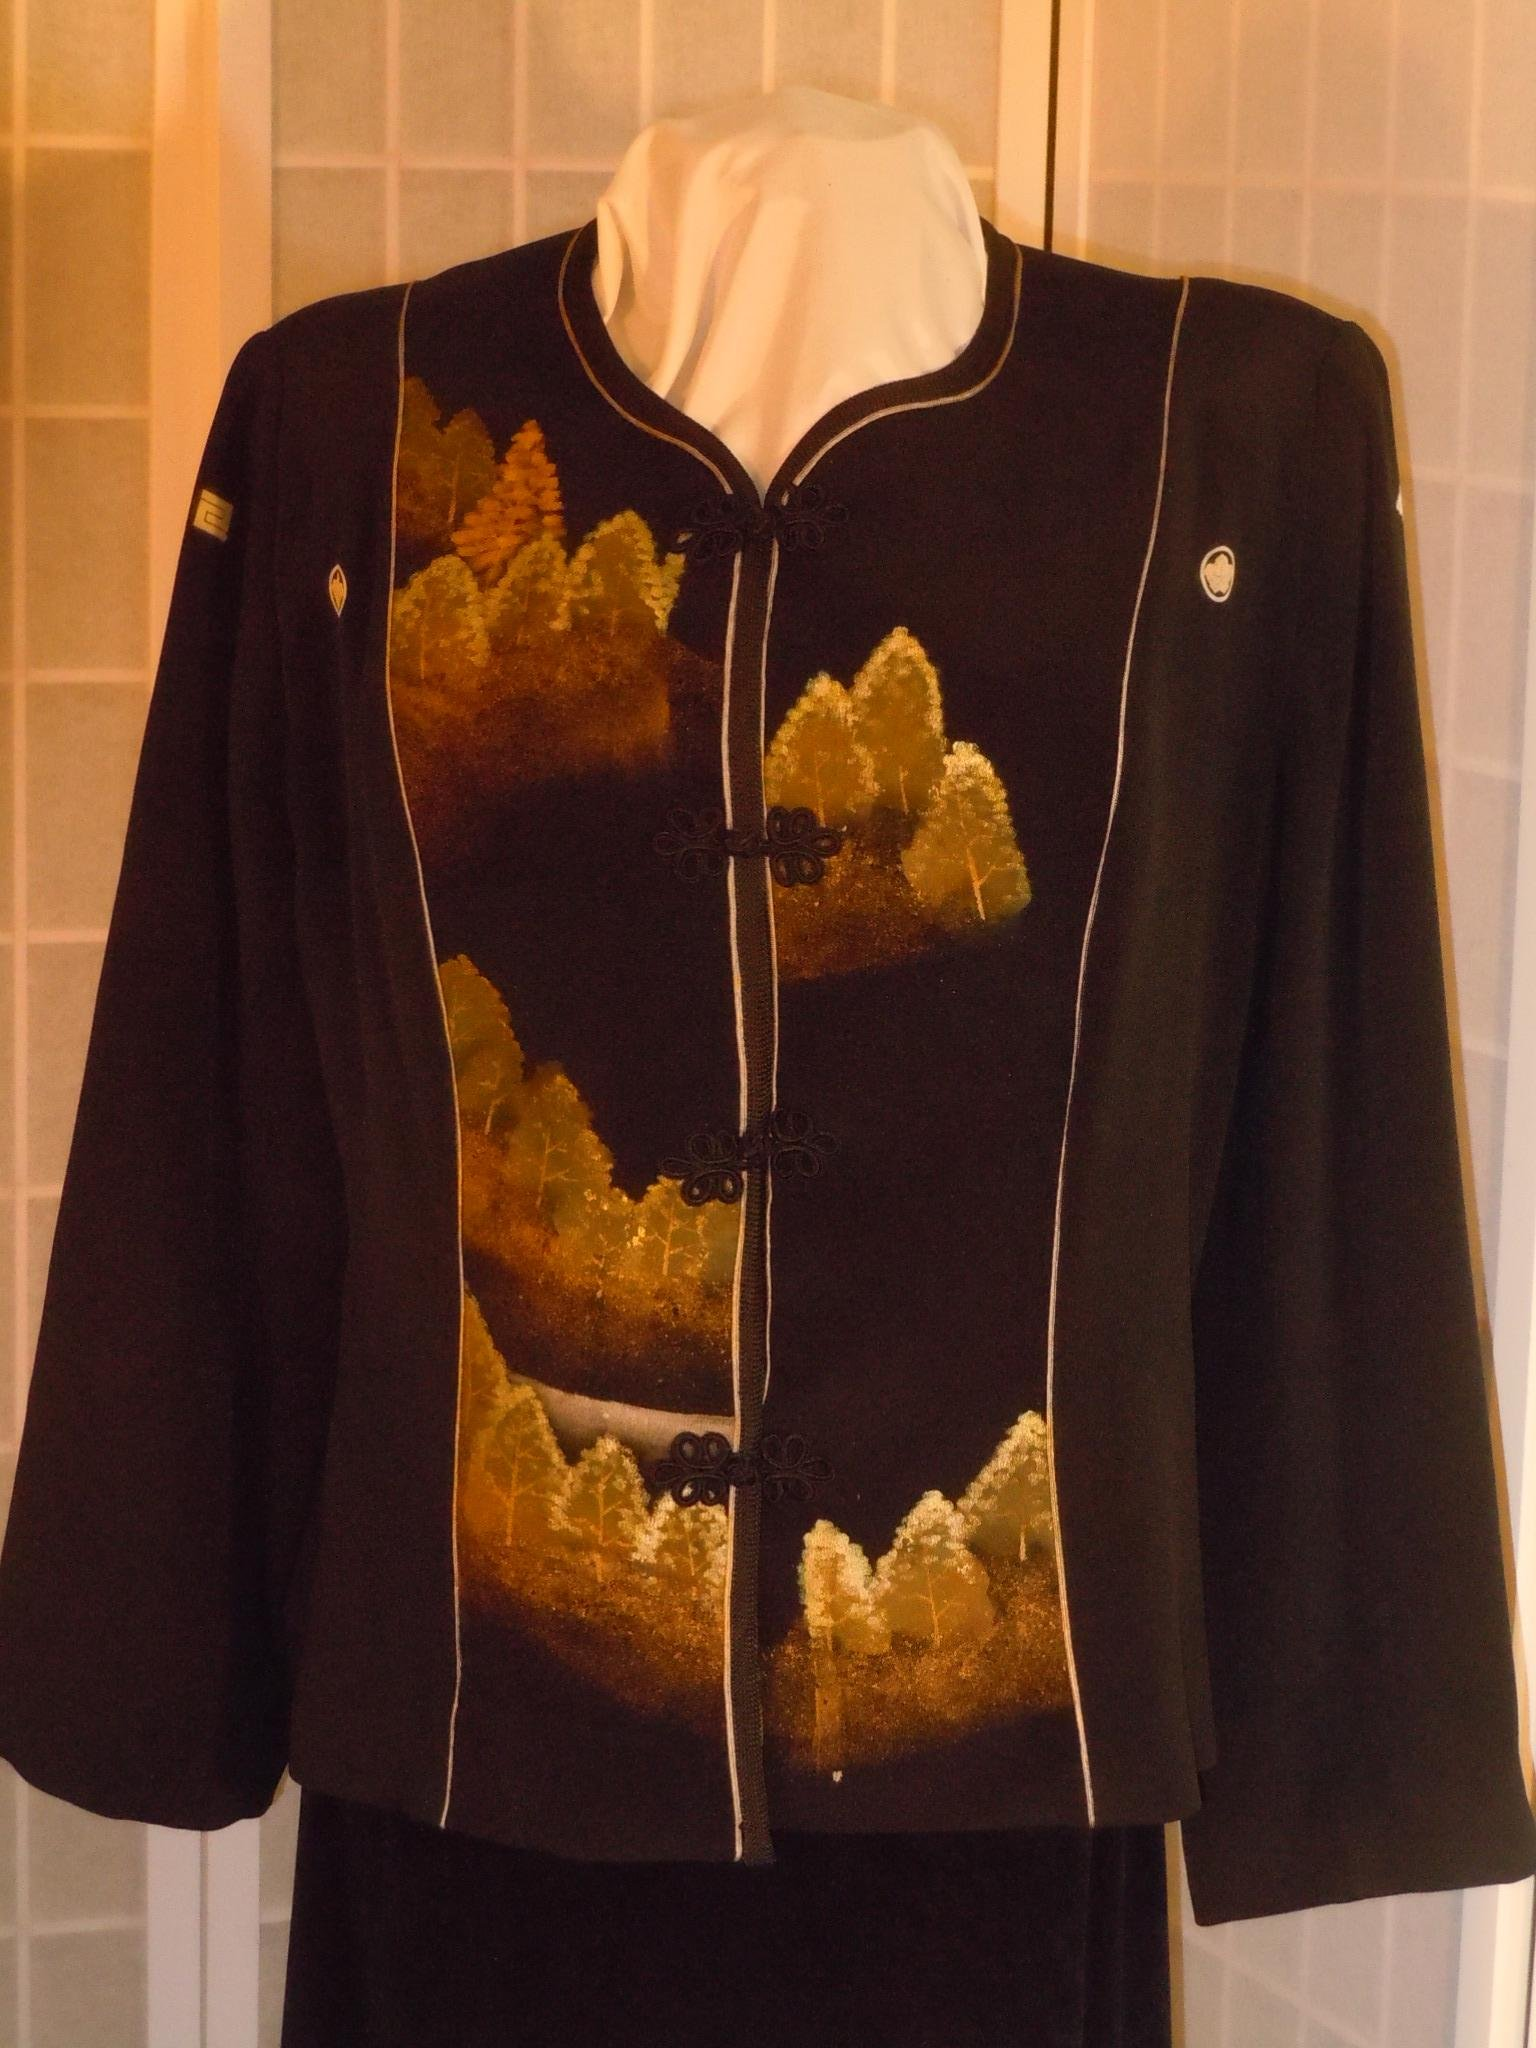 Silk jacket silk blazer size large ''golden forest'' hand painted hand embroidered from Japanese kimono #F58 by First Fruits Apparel